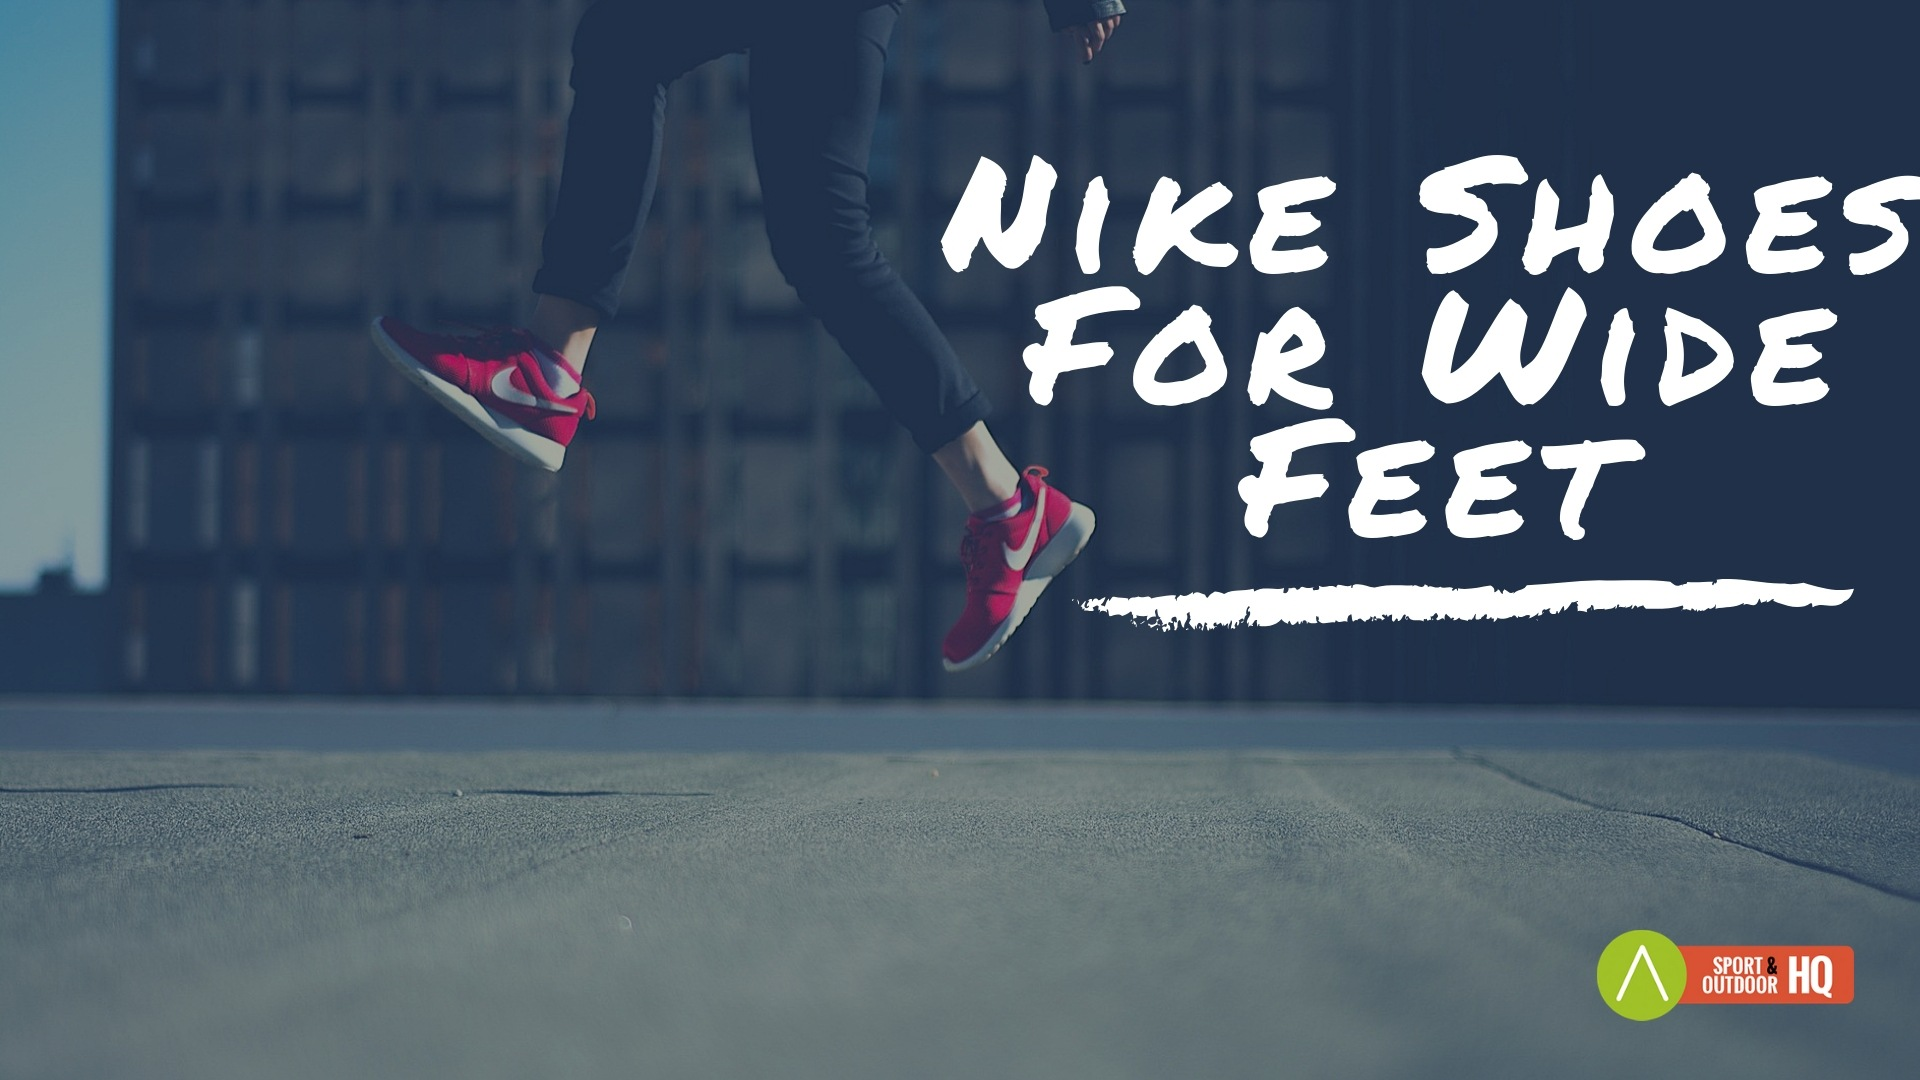 Best Nike Shoes for Wide feet